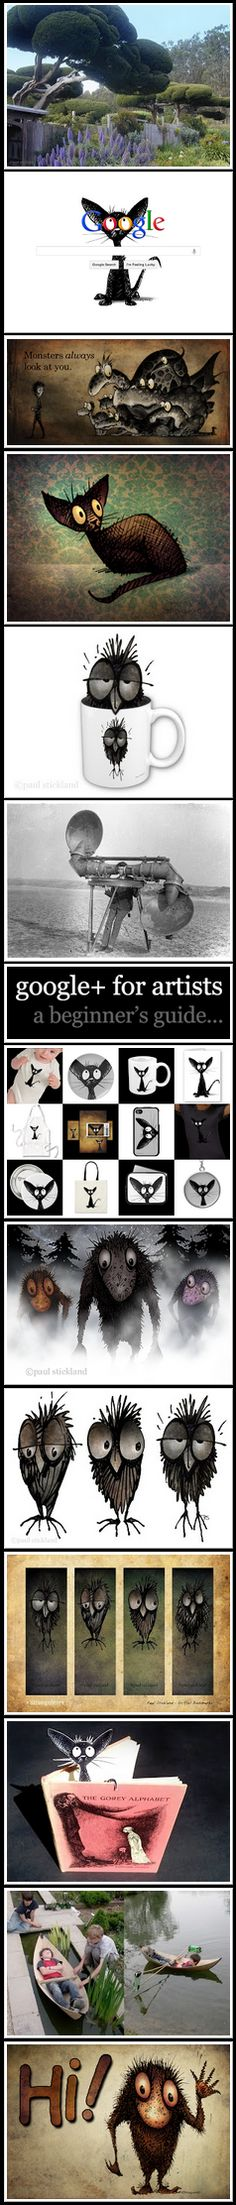 Paul Stickland Art on Google Plus. Click through for an amazing pinterest style presentation.    . #strangestore #googleplus #cats #owls